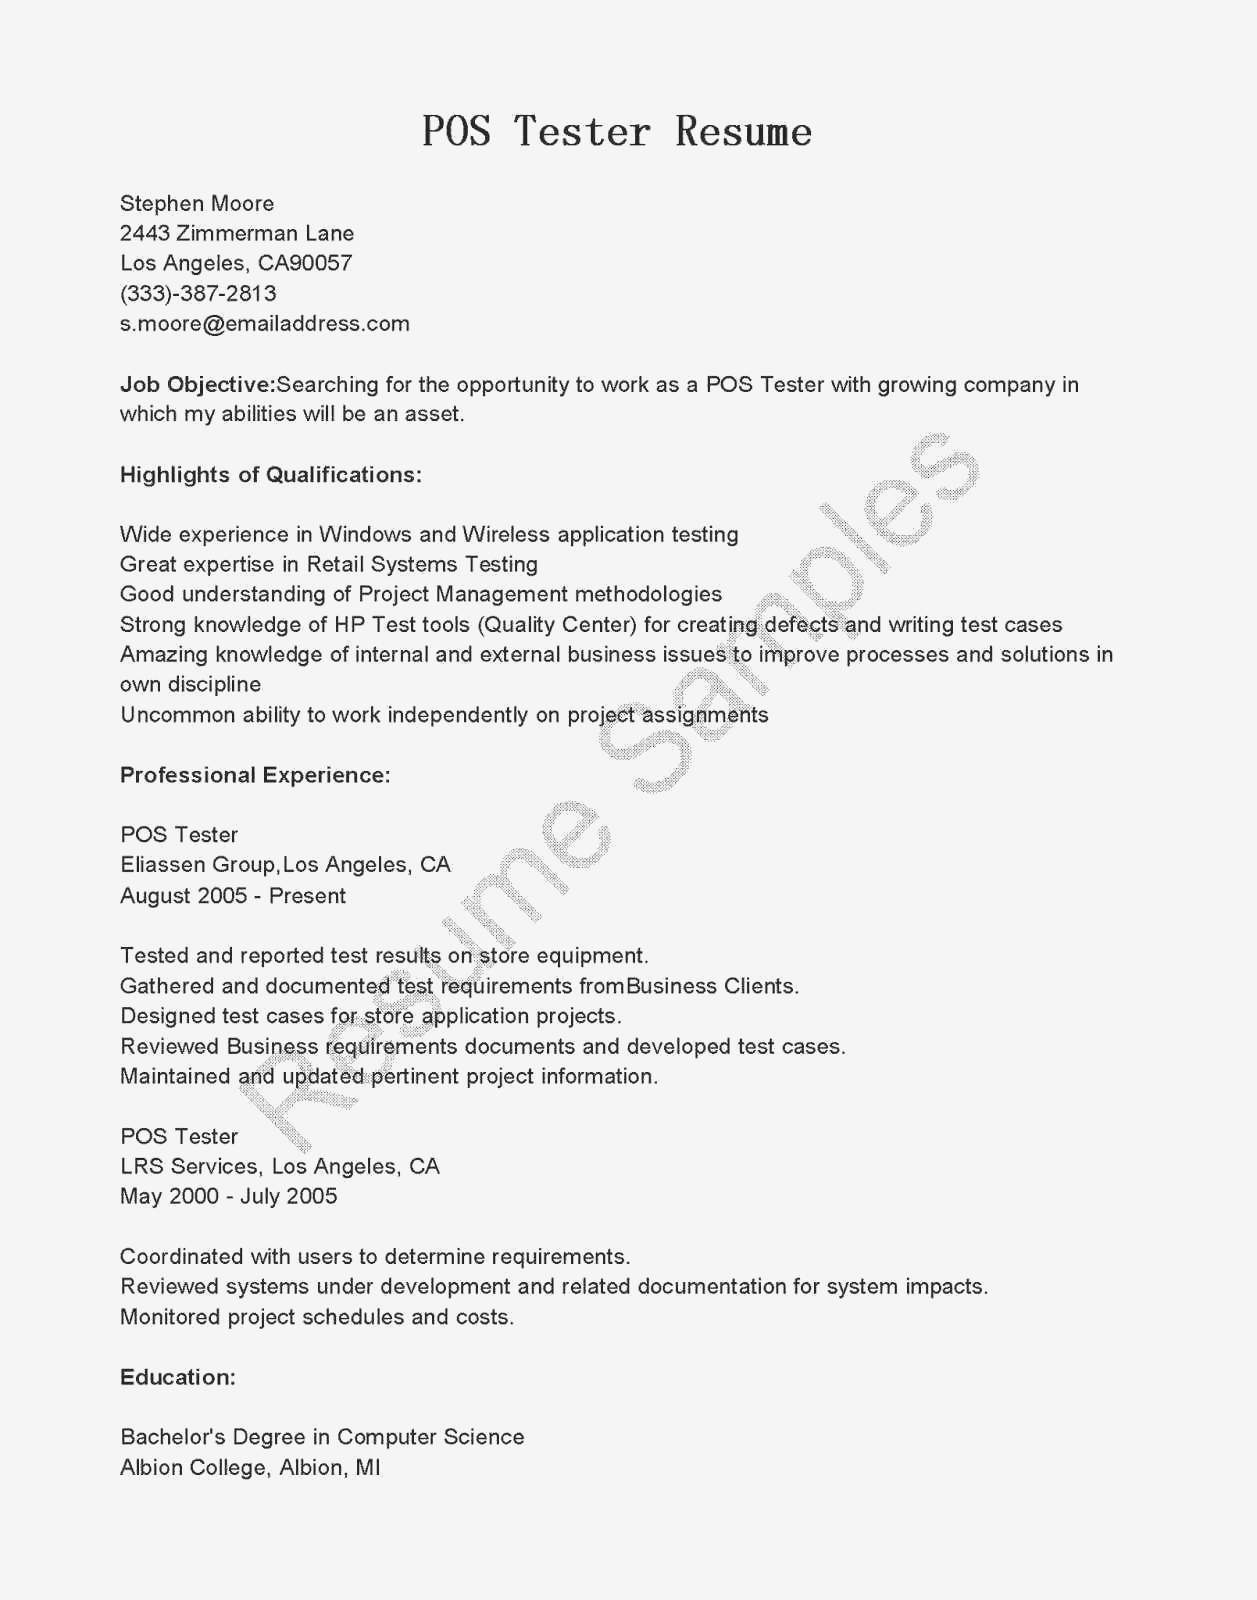 truck driver resume objective , truck driver resume objective statement 2019 , truck driver resume samples 2020, truck driver resume template word, truck driver resume template australia, cdl truck driver resume objective, dump truck driver resume objective tow truck driver resume objective entry level truck driver resume